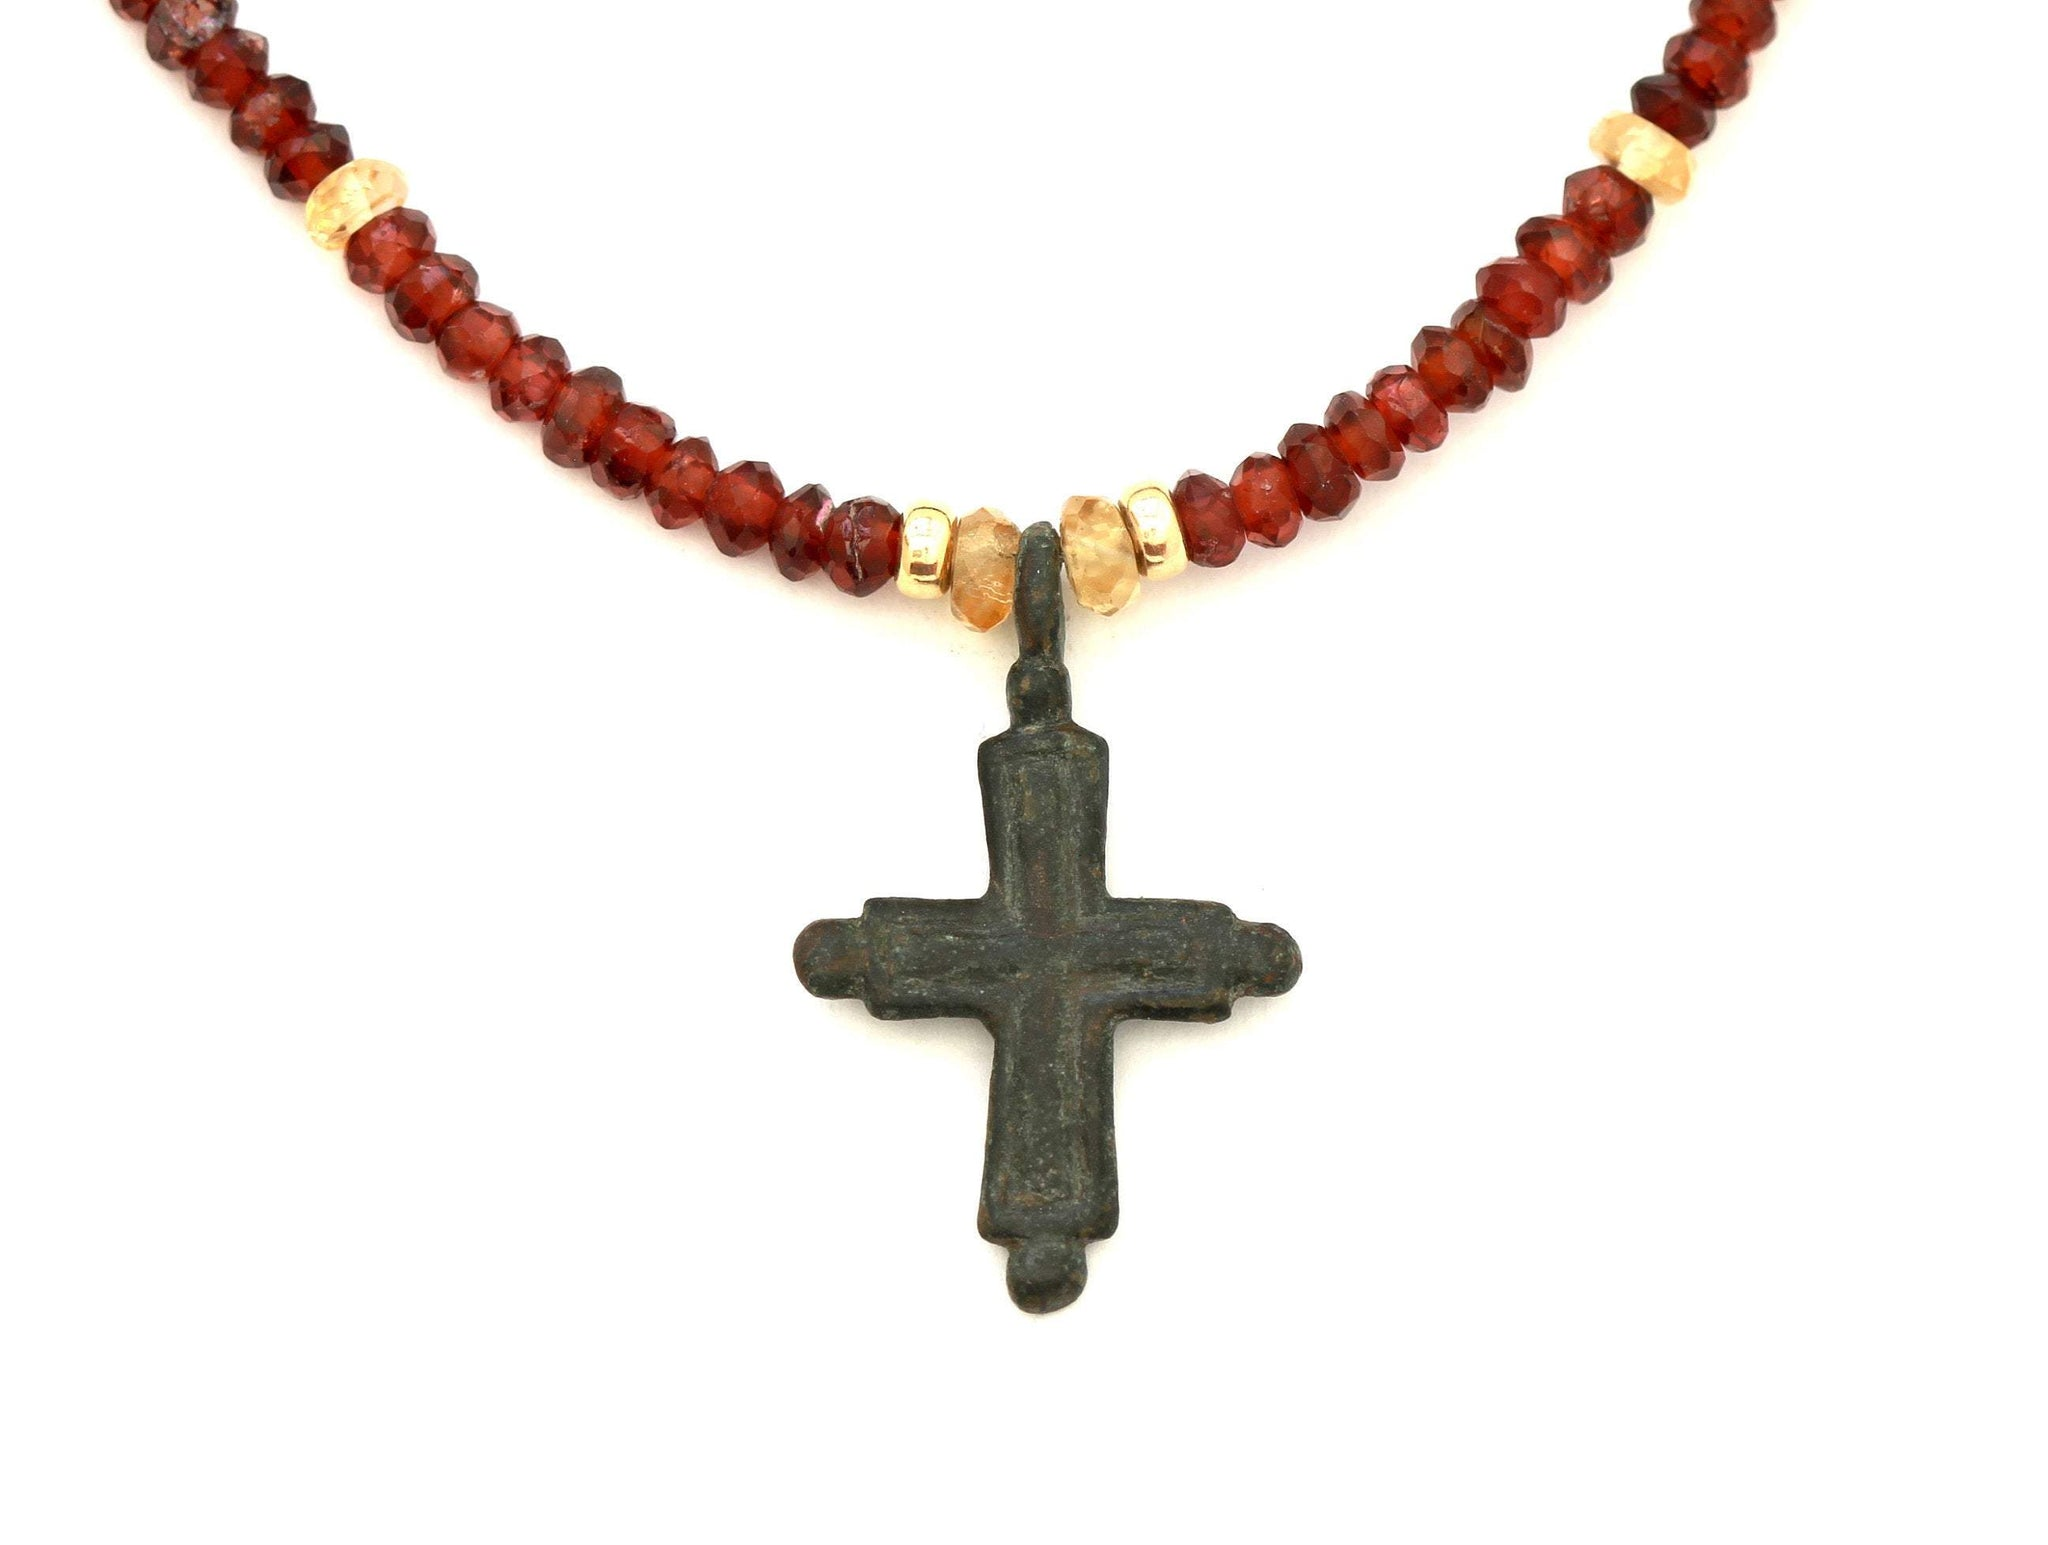 Artifact Garnet Necklace, Byzantine Empire Relic Cross, Certificate 8046 - Erez Ancient Coin Jewelry